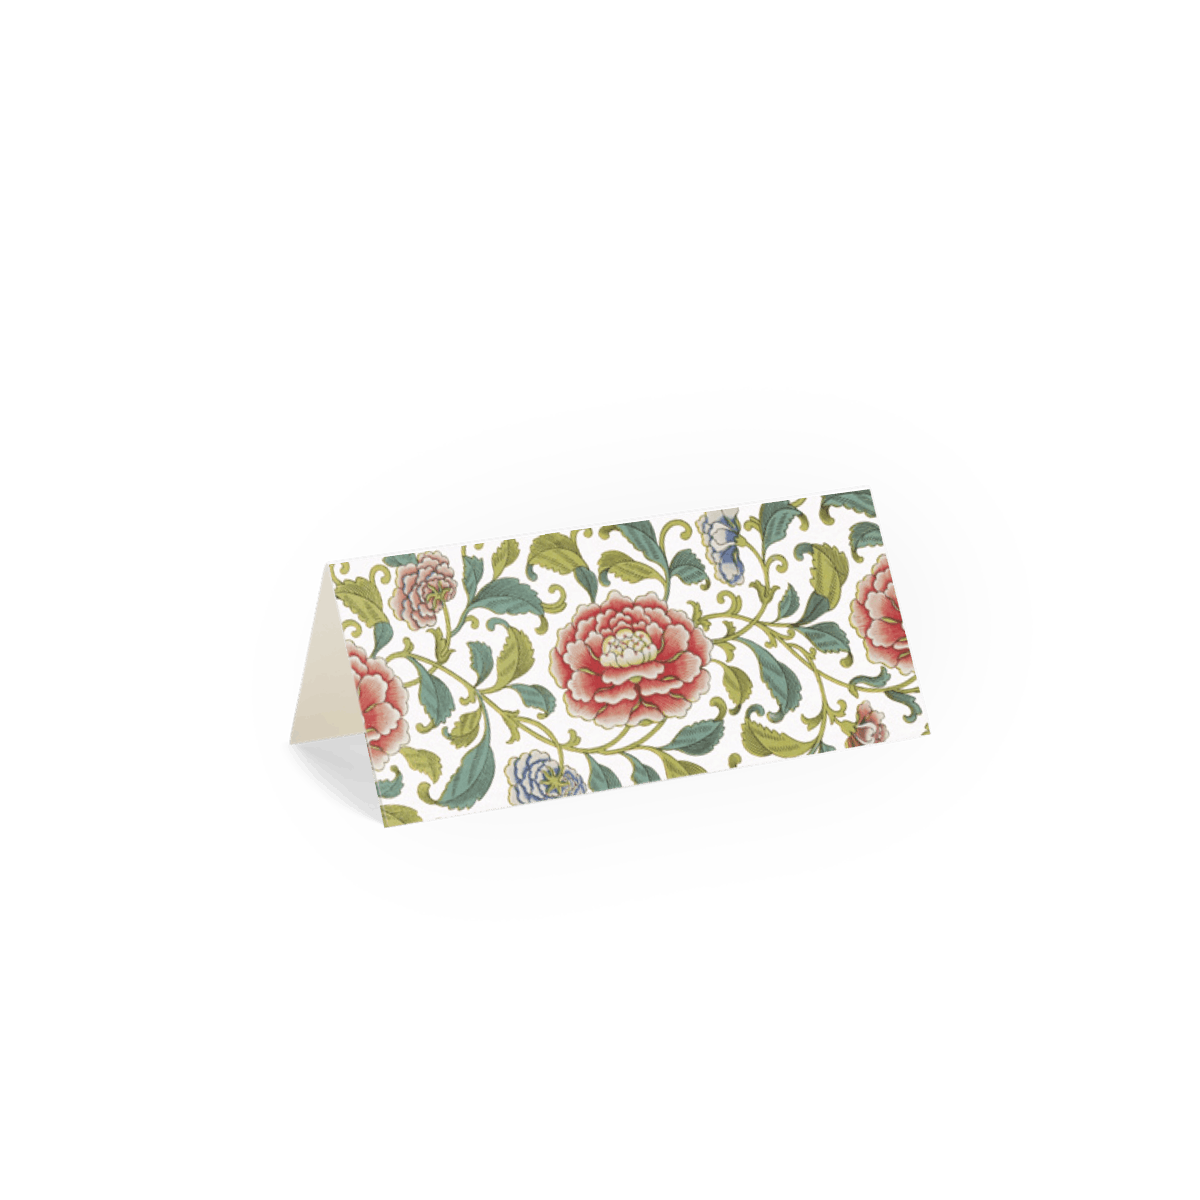 Https%3a%2f%2fwww.papier.com%2fproduct image%2f82597%2f15%2fornate florals 20002 back 1562160155.png?ixlib=rb 1.1